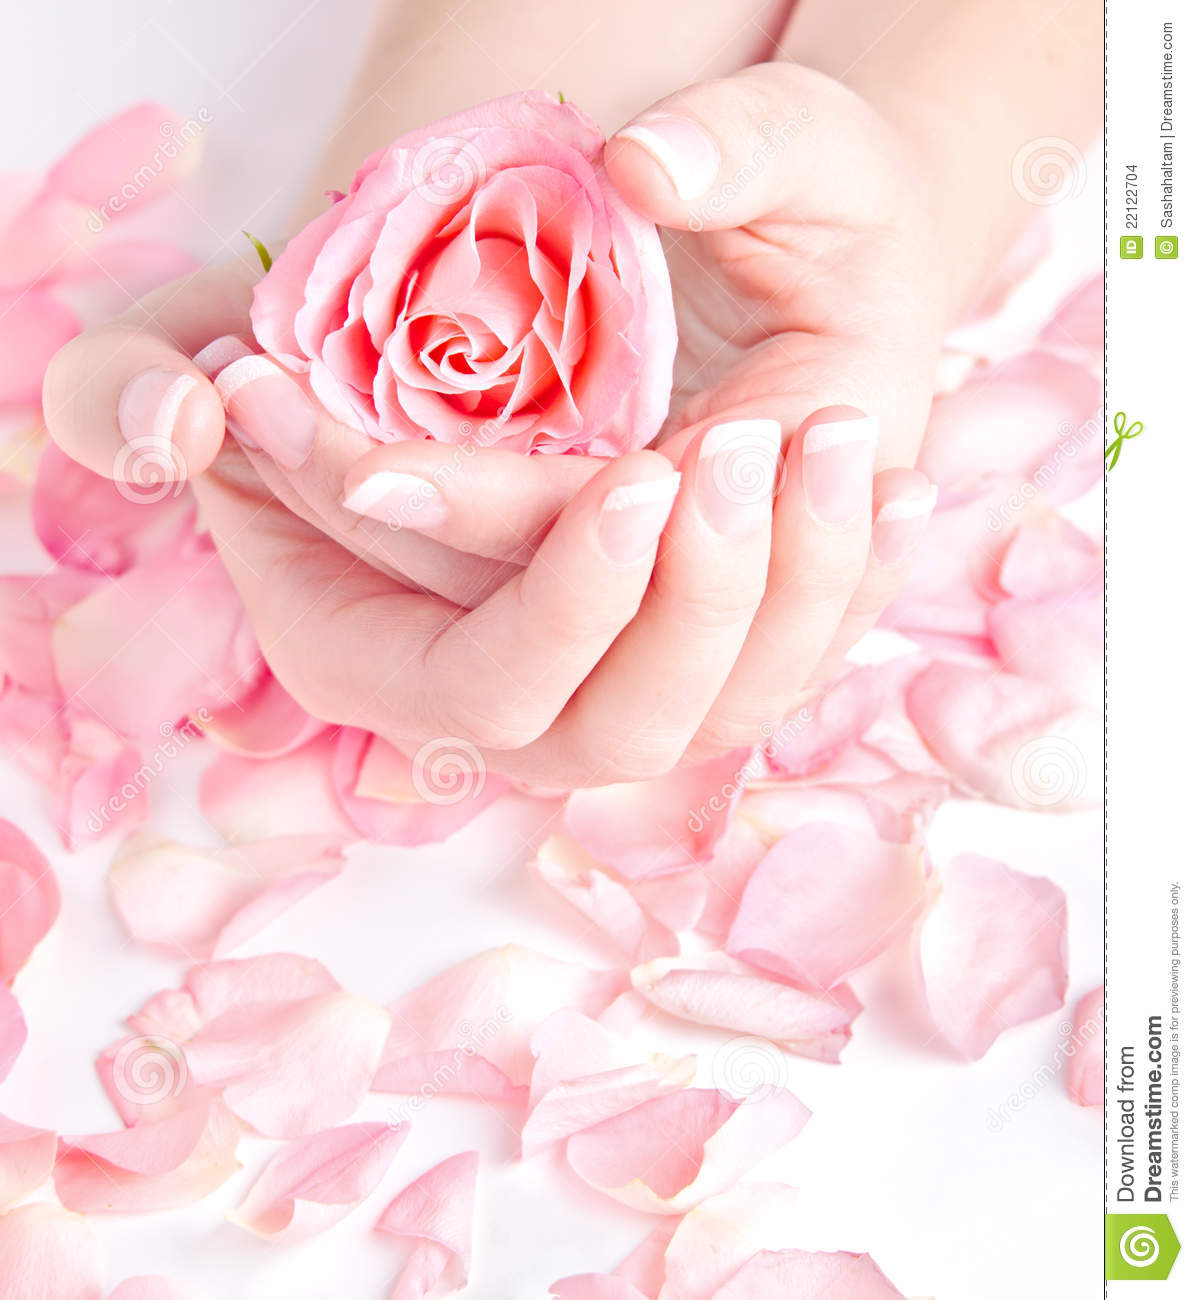 More similar stock images of ` Beautiful hands holding rose `